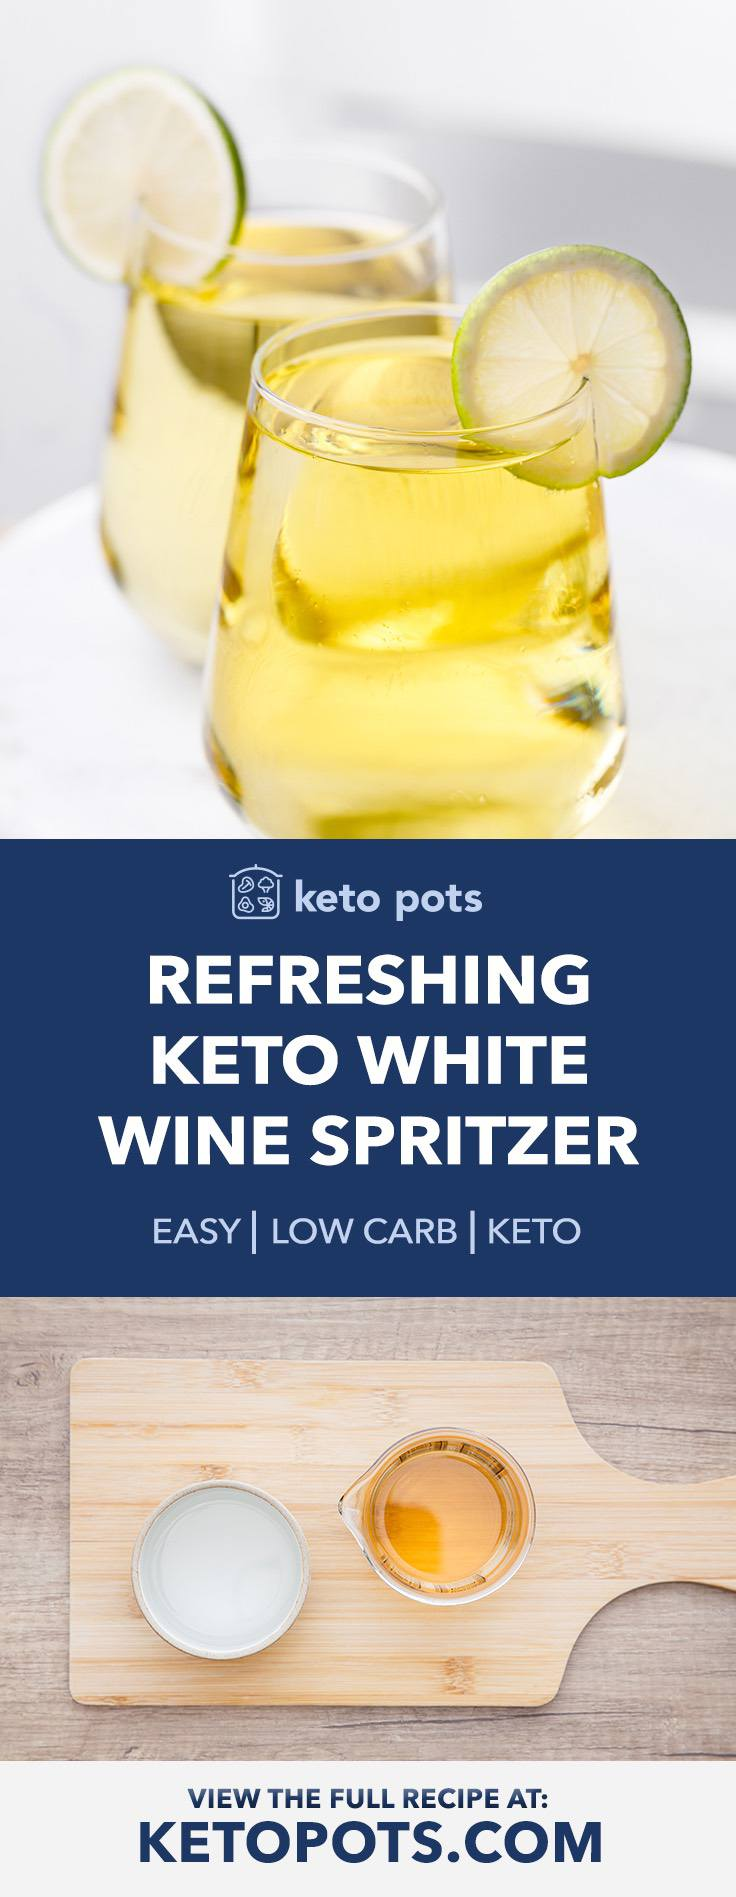 Refreshing and Low Carb Keto White Wine Spritzer